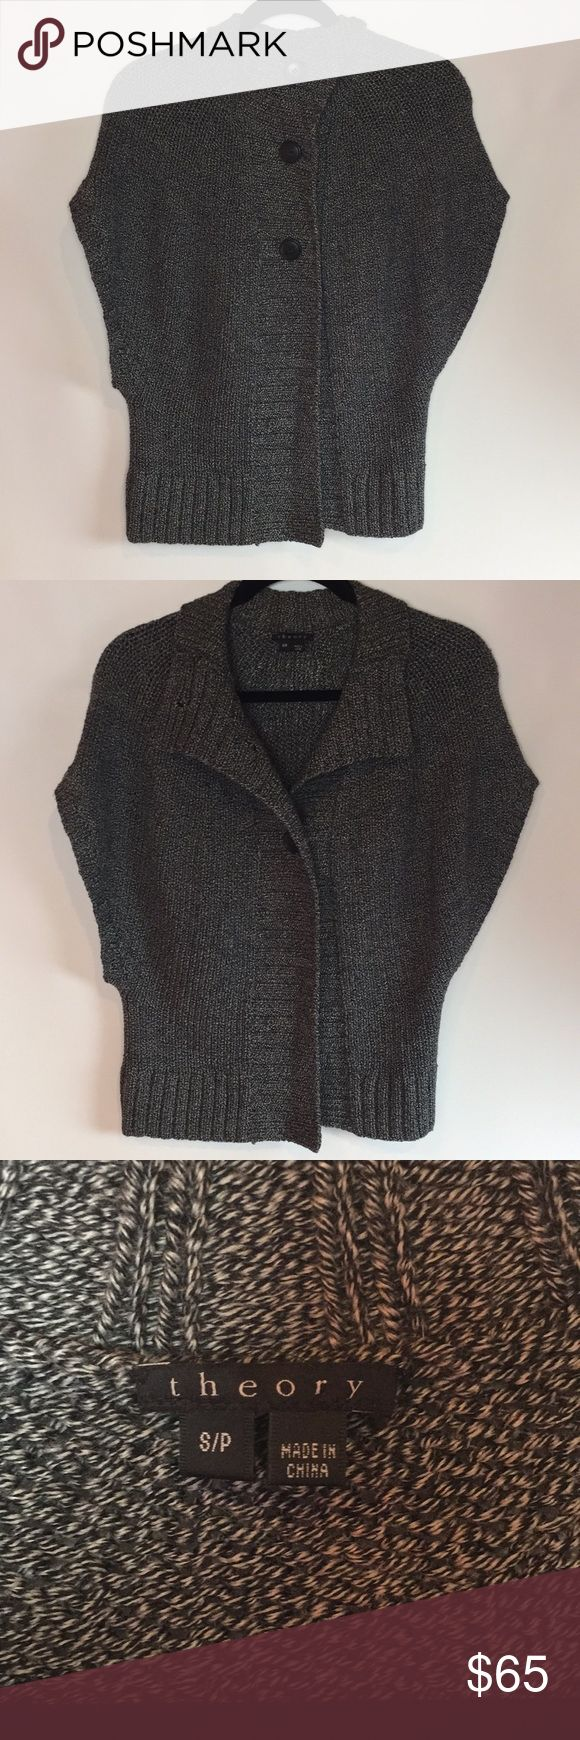 Theory Innes Shaker Gray Short Sleeve Cardigan Theory Innes Shaker Gray Short Sleeve Cardigan   Size small   Excellent condition   100% Wool  3 buttons Theory Sweaters Cardigans